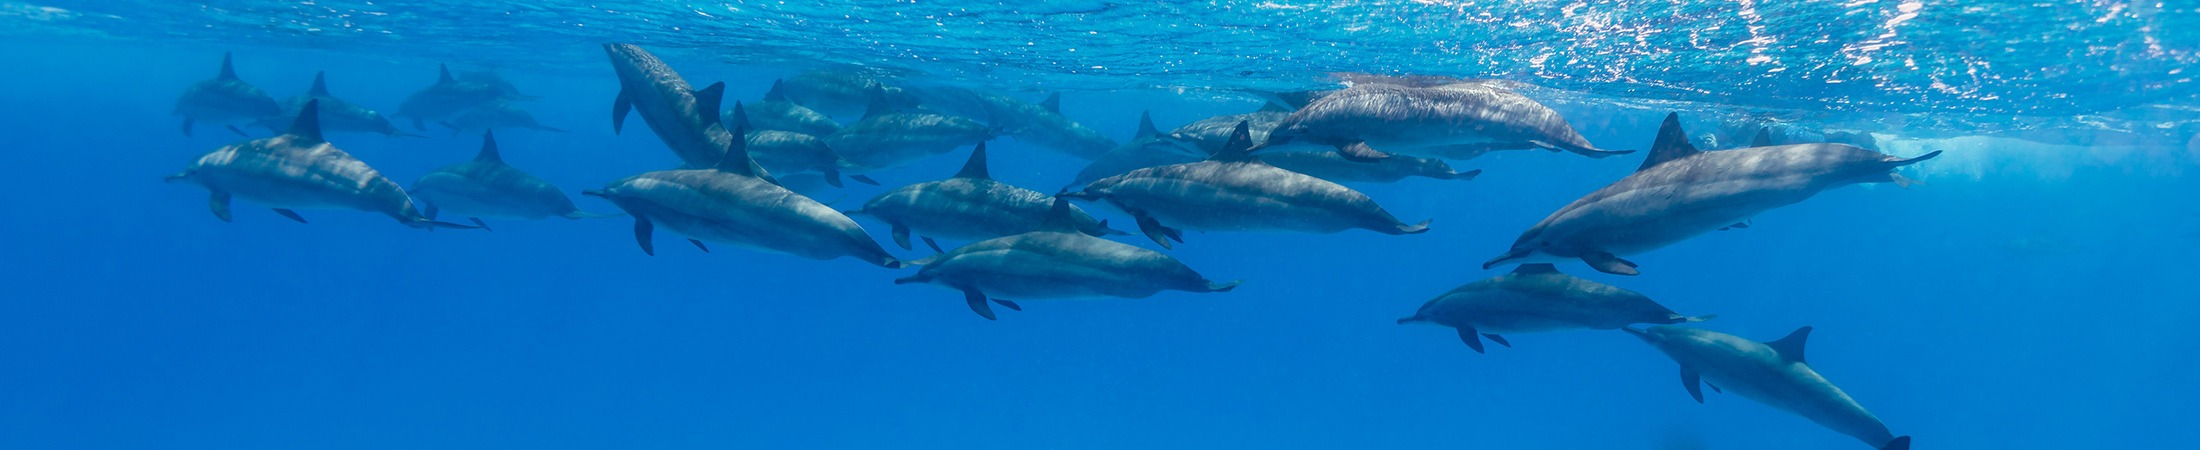 the-dolphin-centre-mozambique-ponta-do-ouro-dolphin-swims